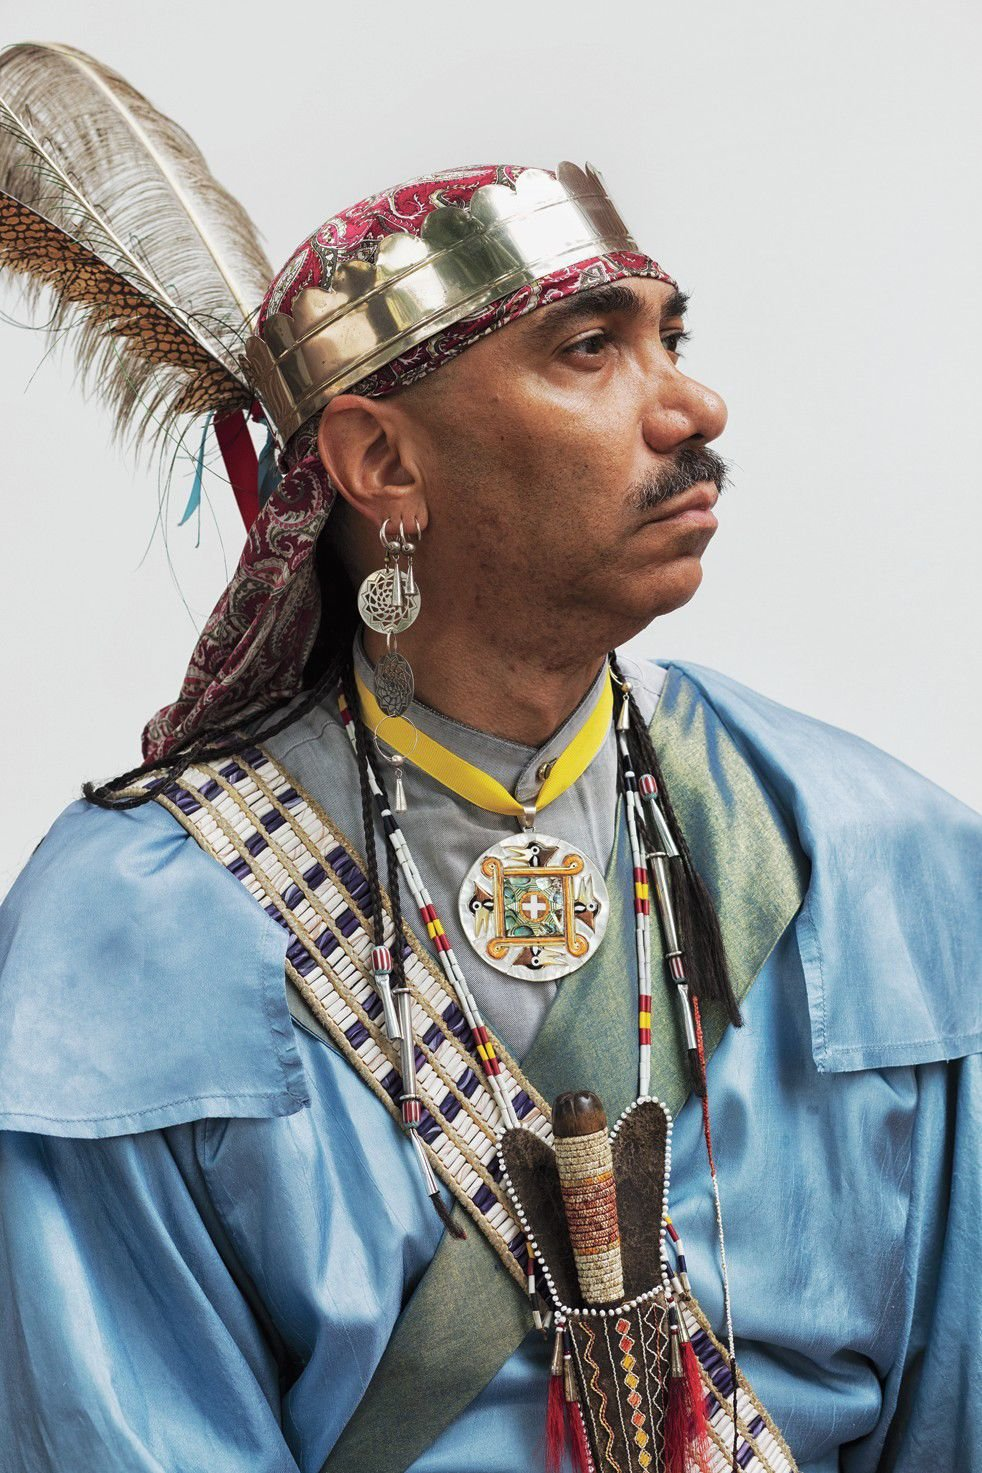 What makes someone Native American? One tribe's long